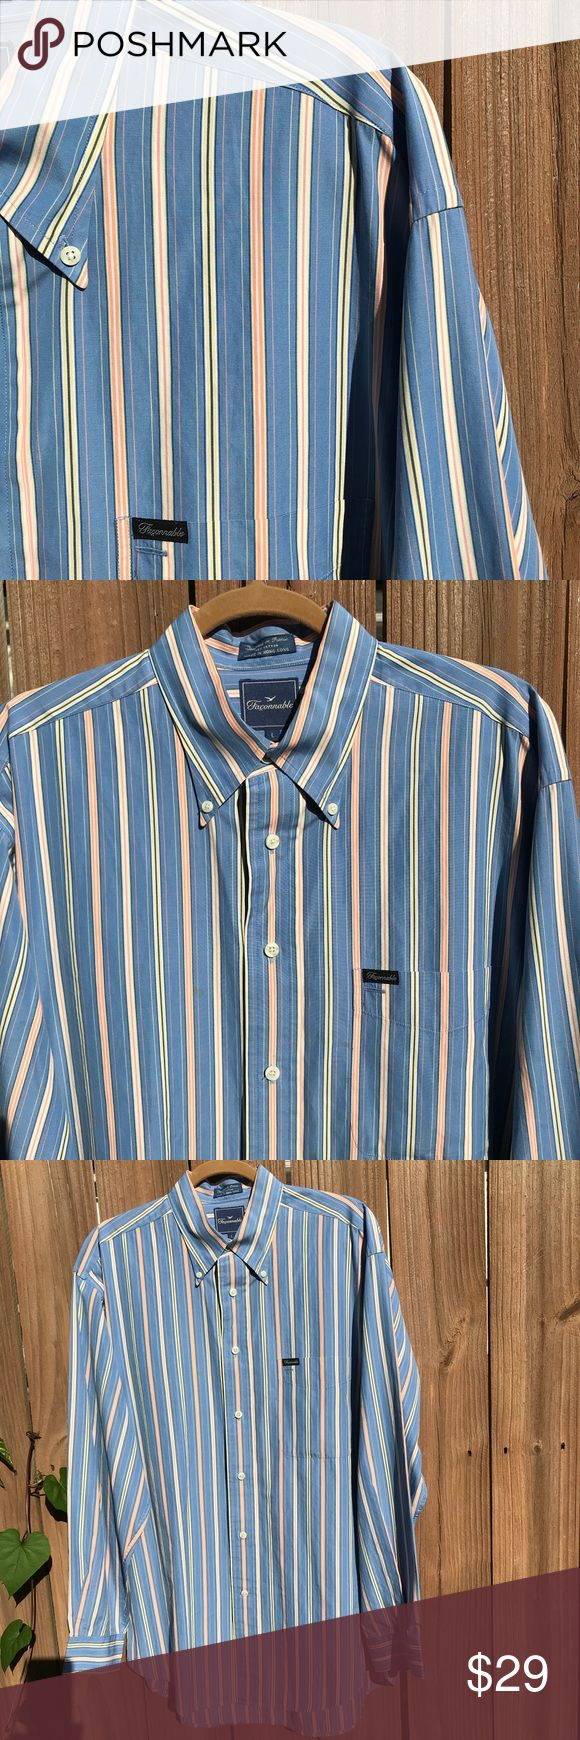 Men's Faconnable shirt blue Large Faconnable casual dress shirt 100% cotton Made in Hong Kong Size Large Excellent preowned  condition Faconnable Shirts Casual Button Down Shirts